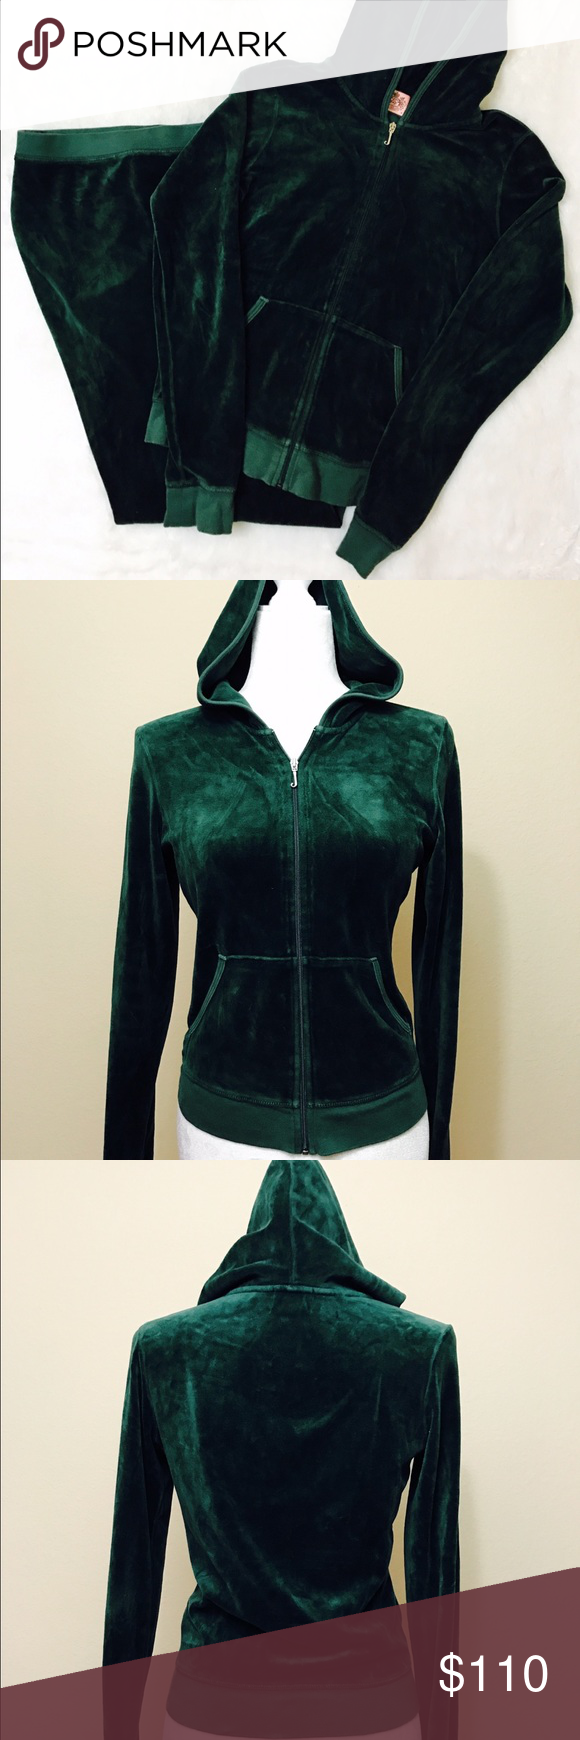 Juicy Couture dark green velvet velour tracksuit Great condition Juicy Couture Pants